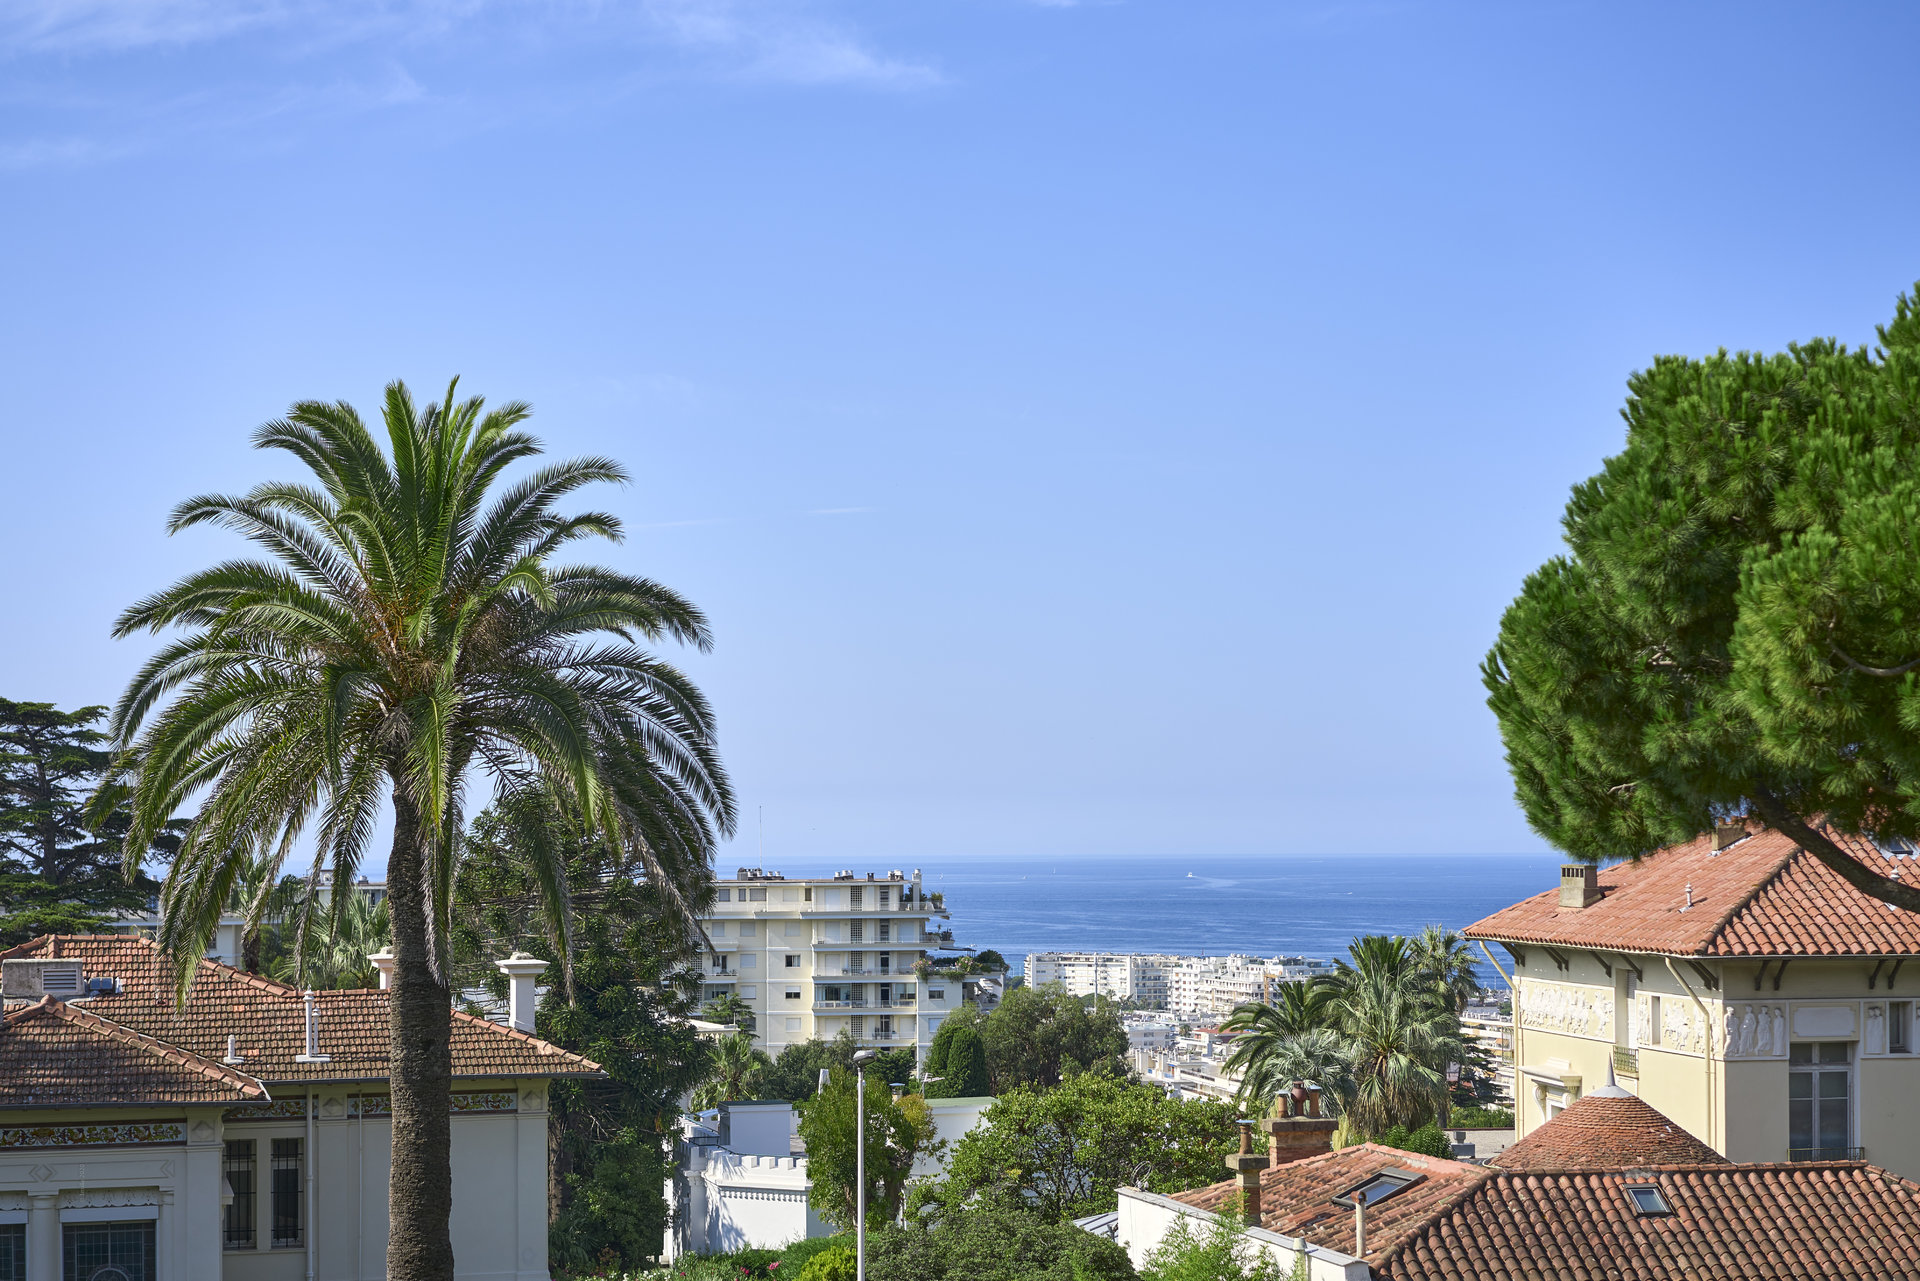 Cannes Californie Superb 2-bedroom apartment Terrace Sea view